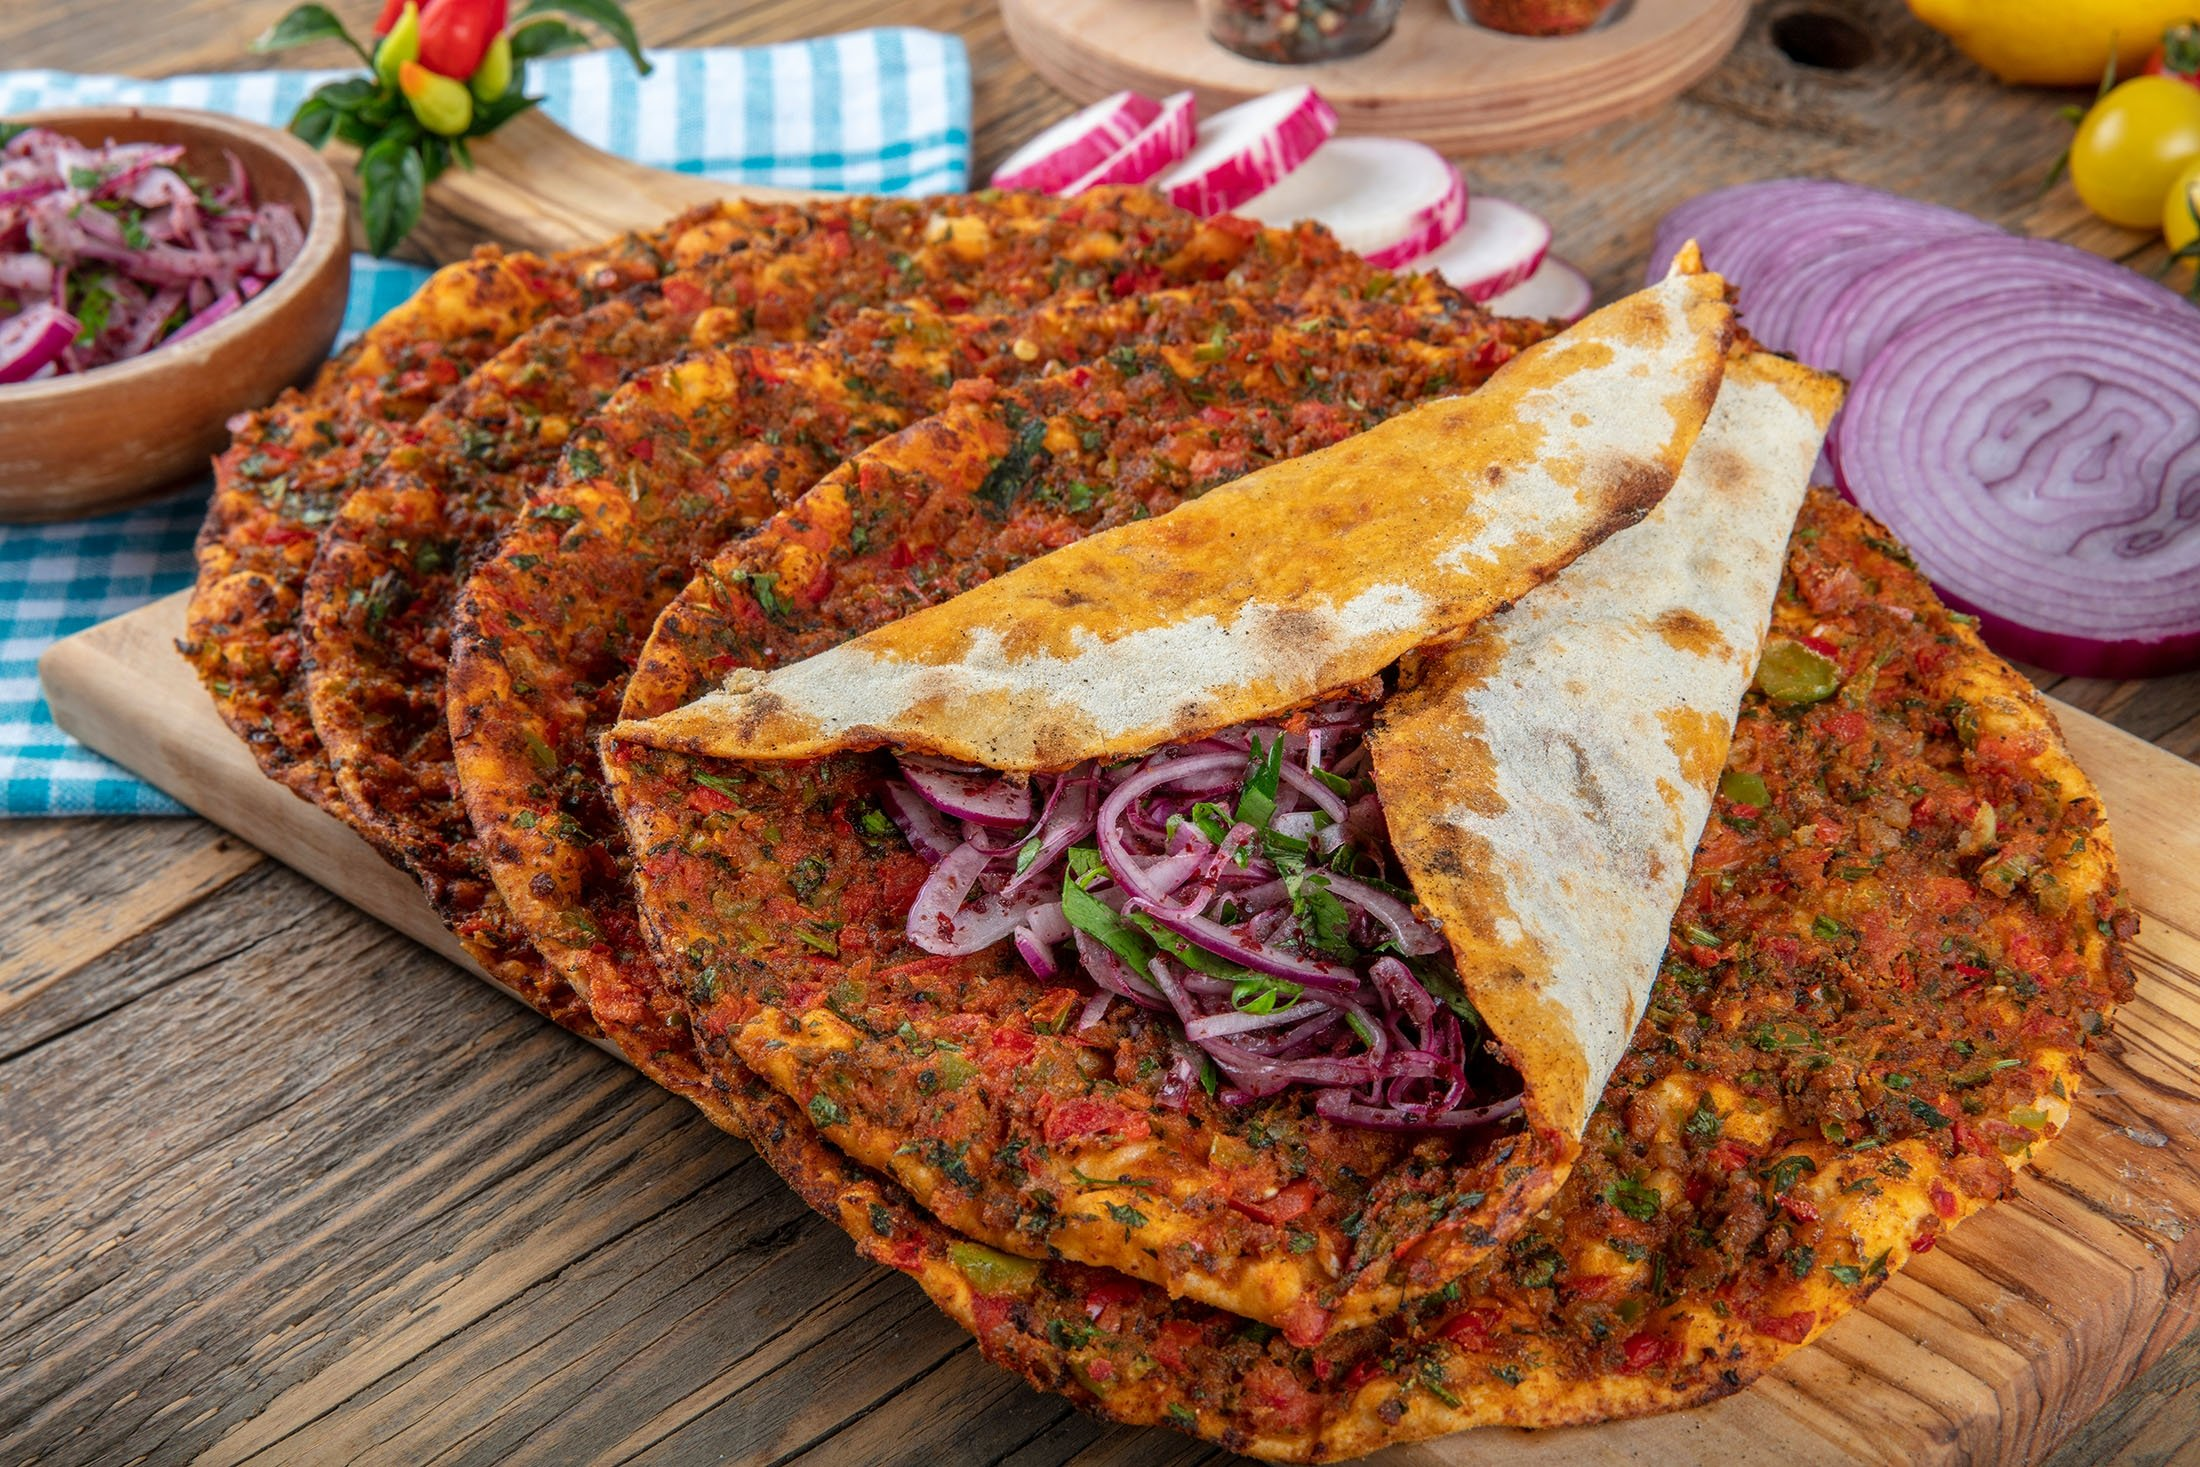 Lahmacun is a round, thin piece of dough topped with minced meat, minced vegetables and herbs. (Shutterstock Photo)